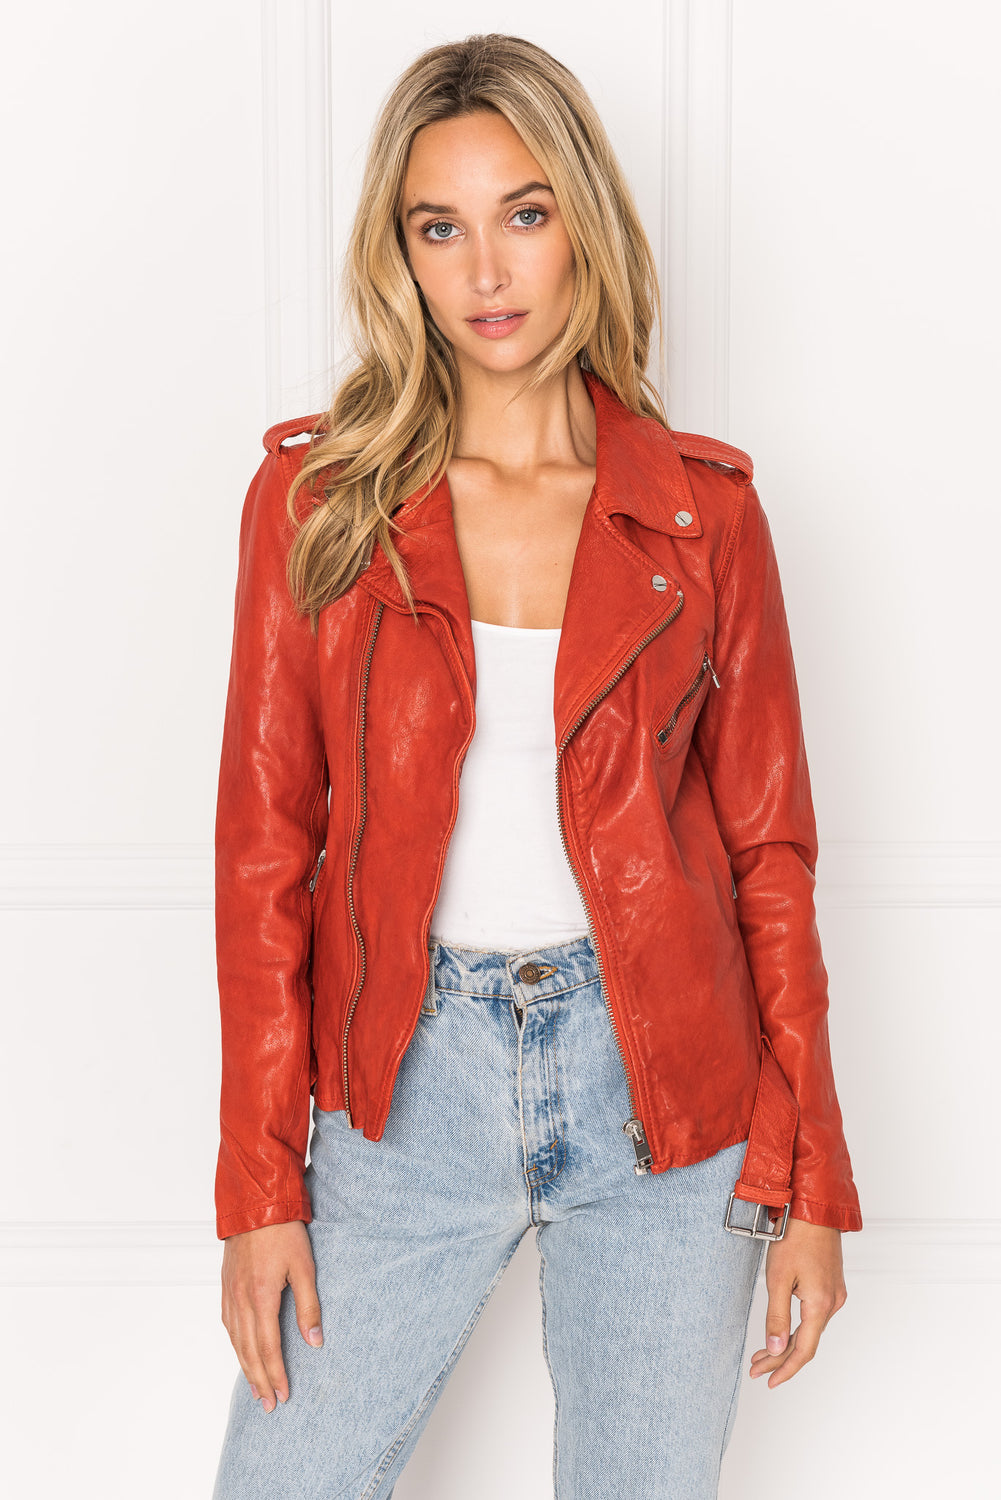 KIYOSHI Sienna Washed Leather Belted Biker Jacket